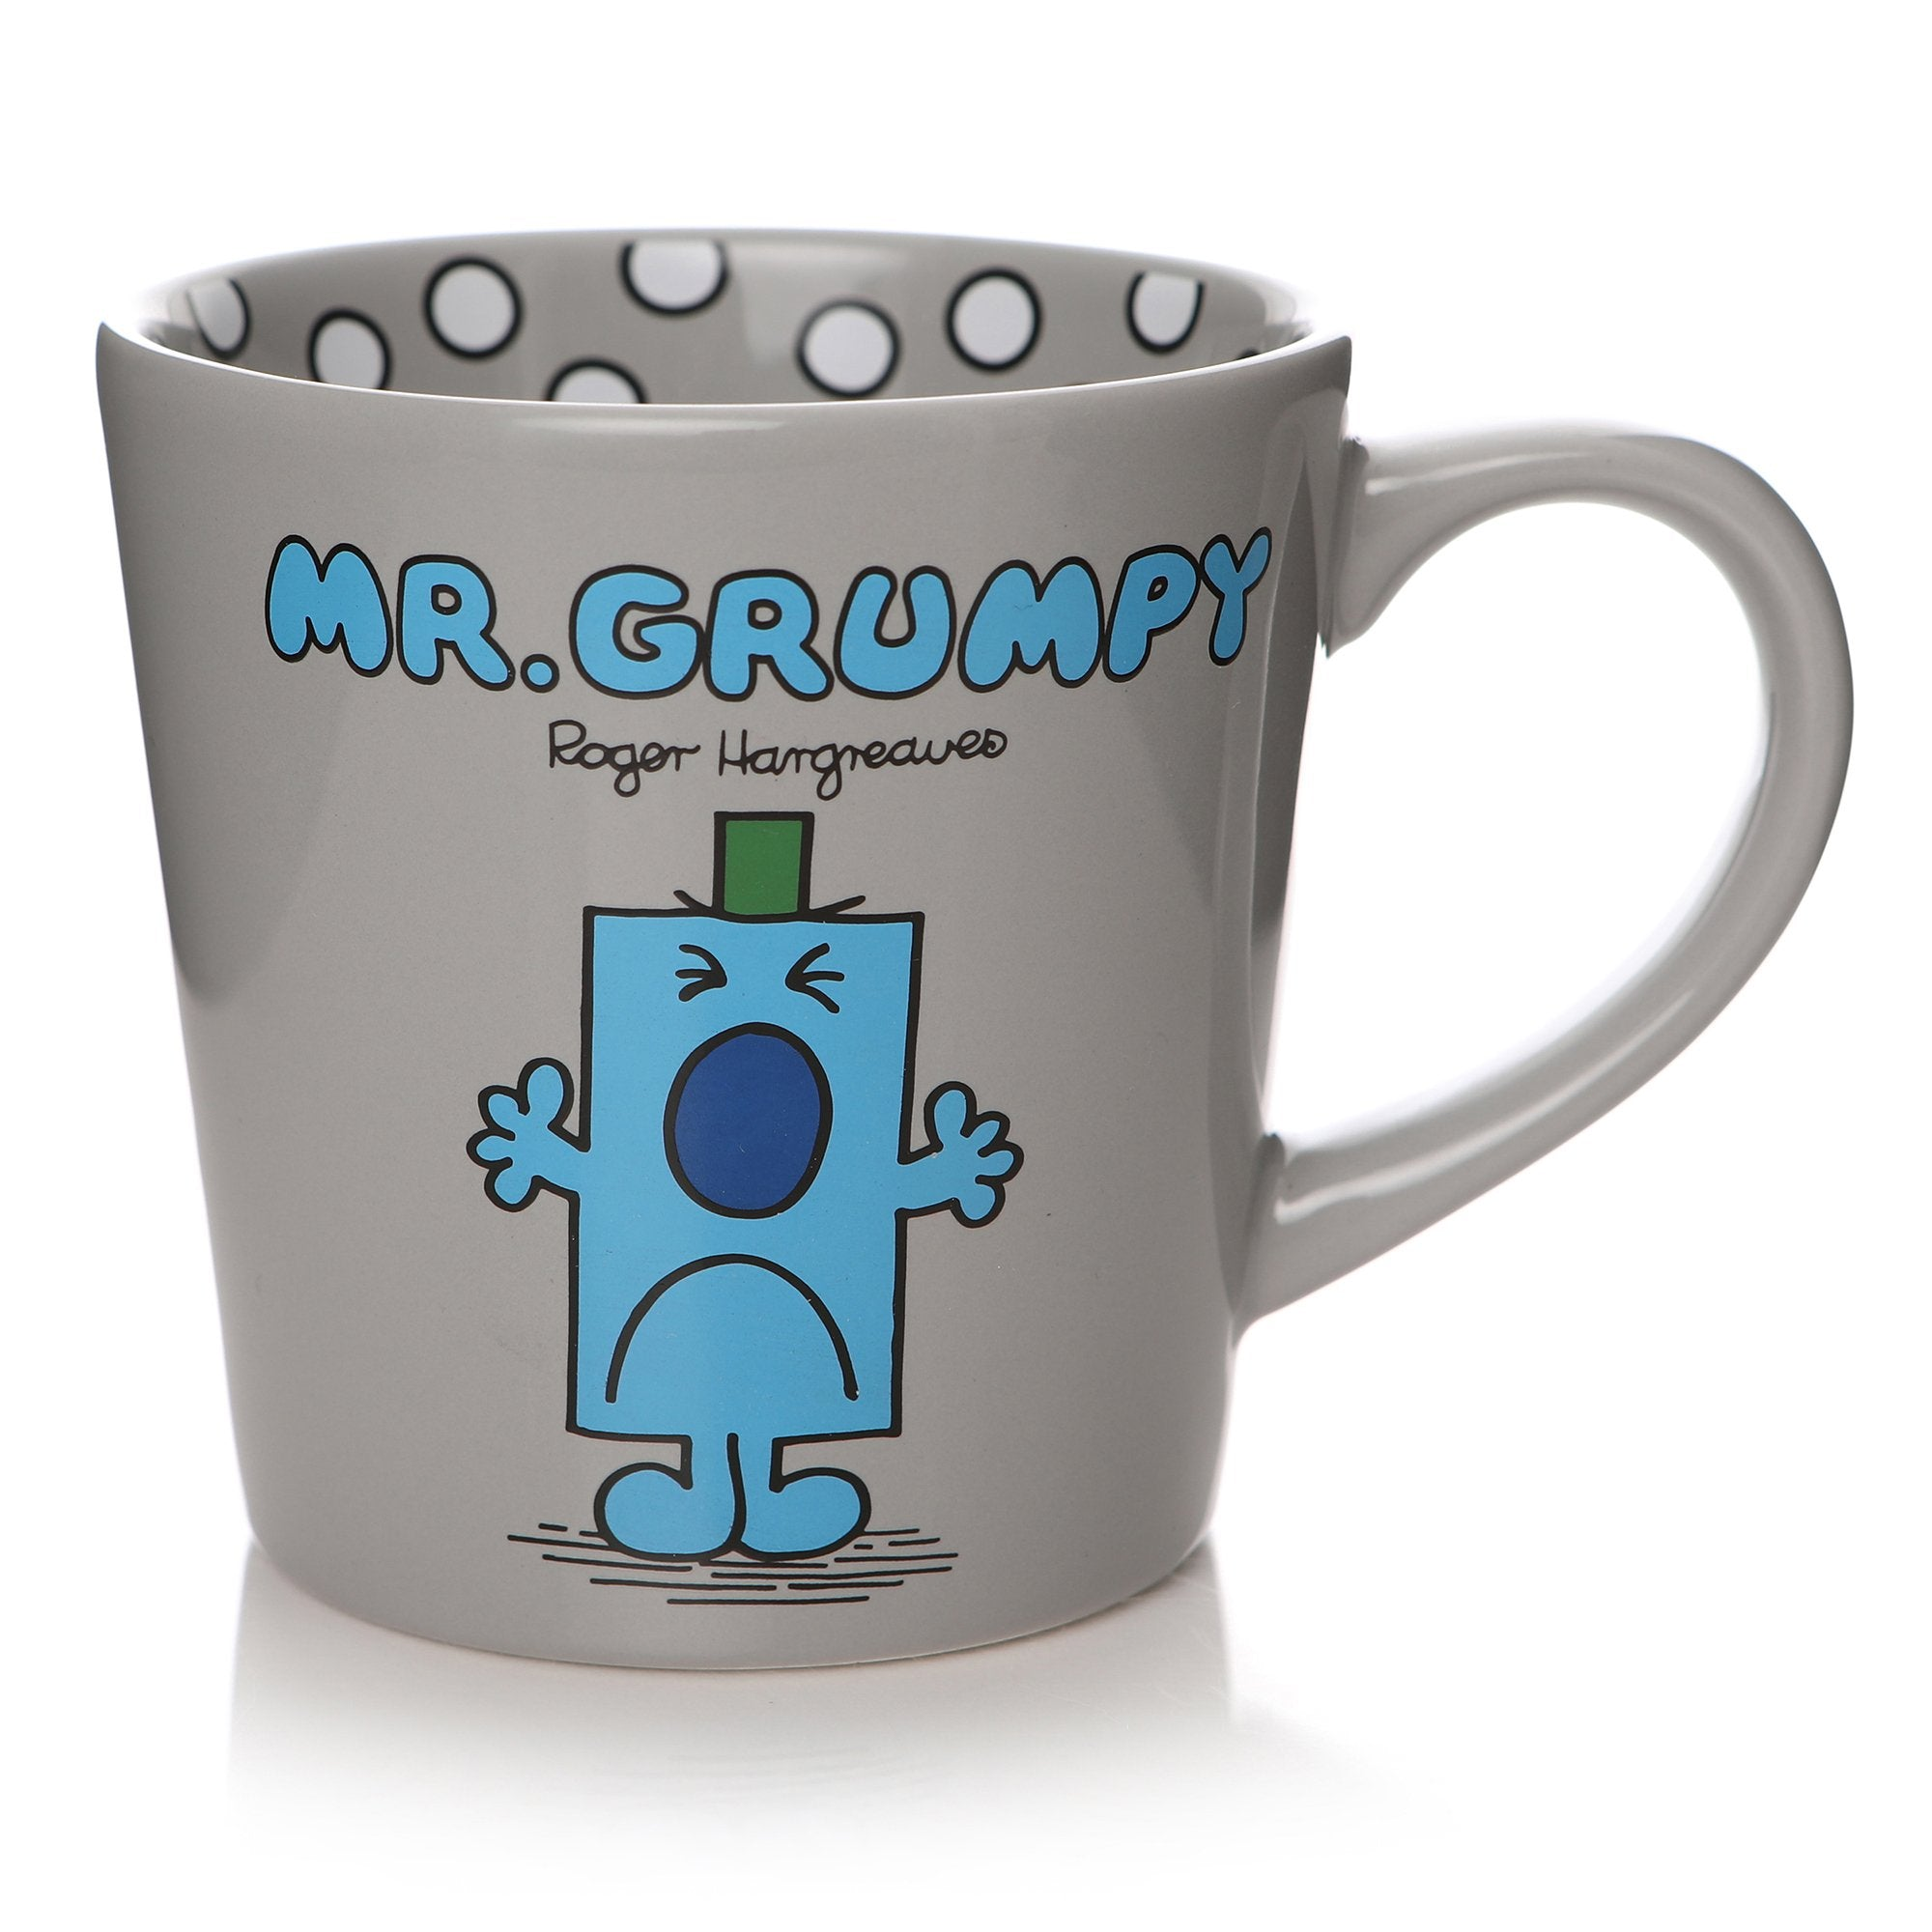 Mr. Men Little Miss Mug - Mr. Grumpy - Half Moon Bay US